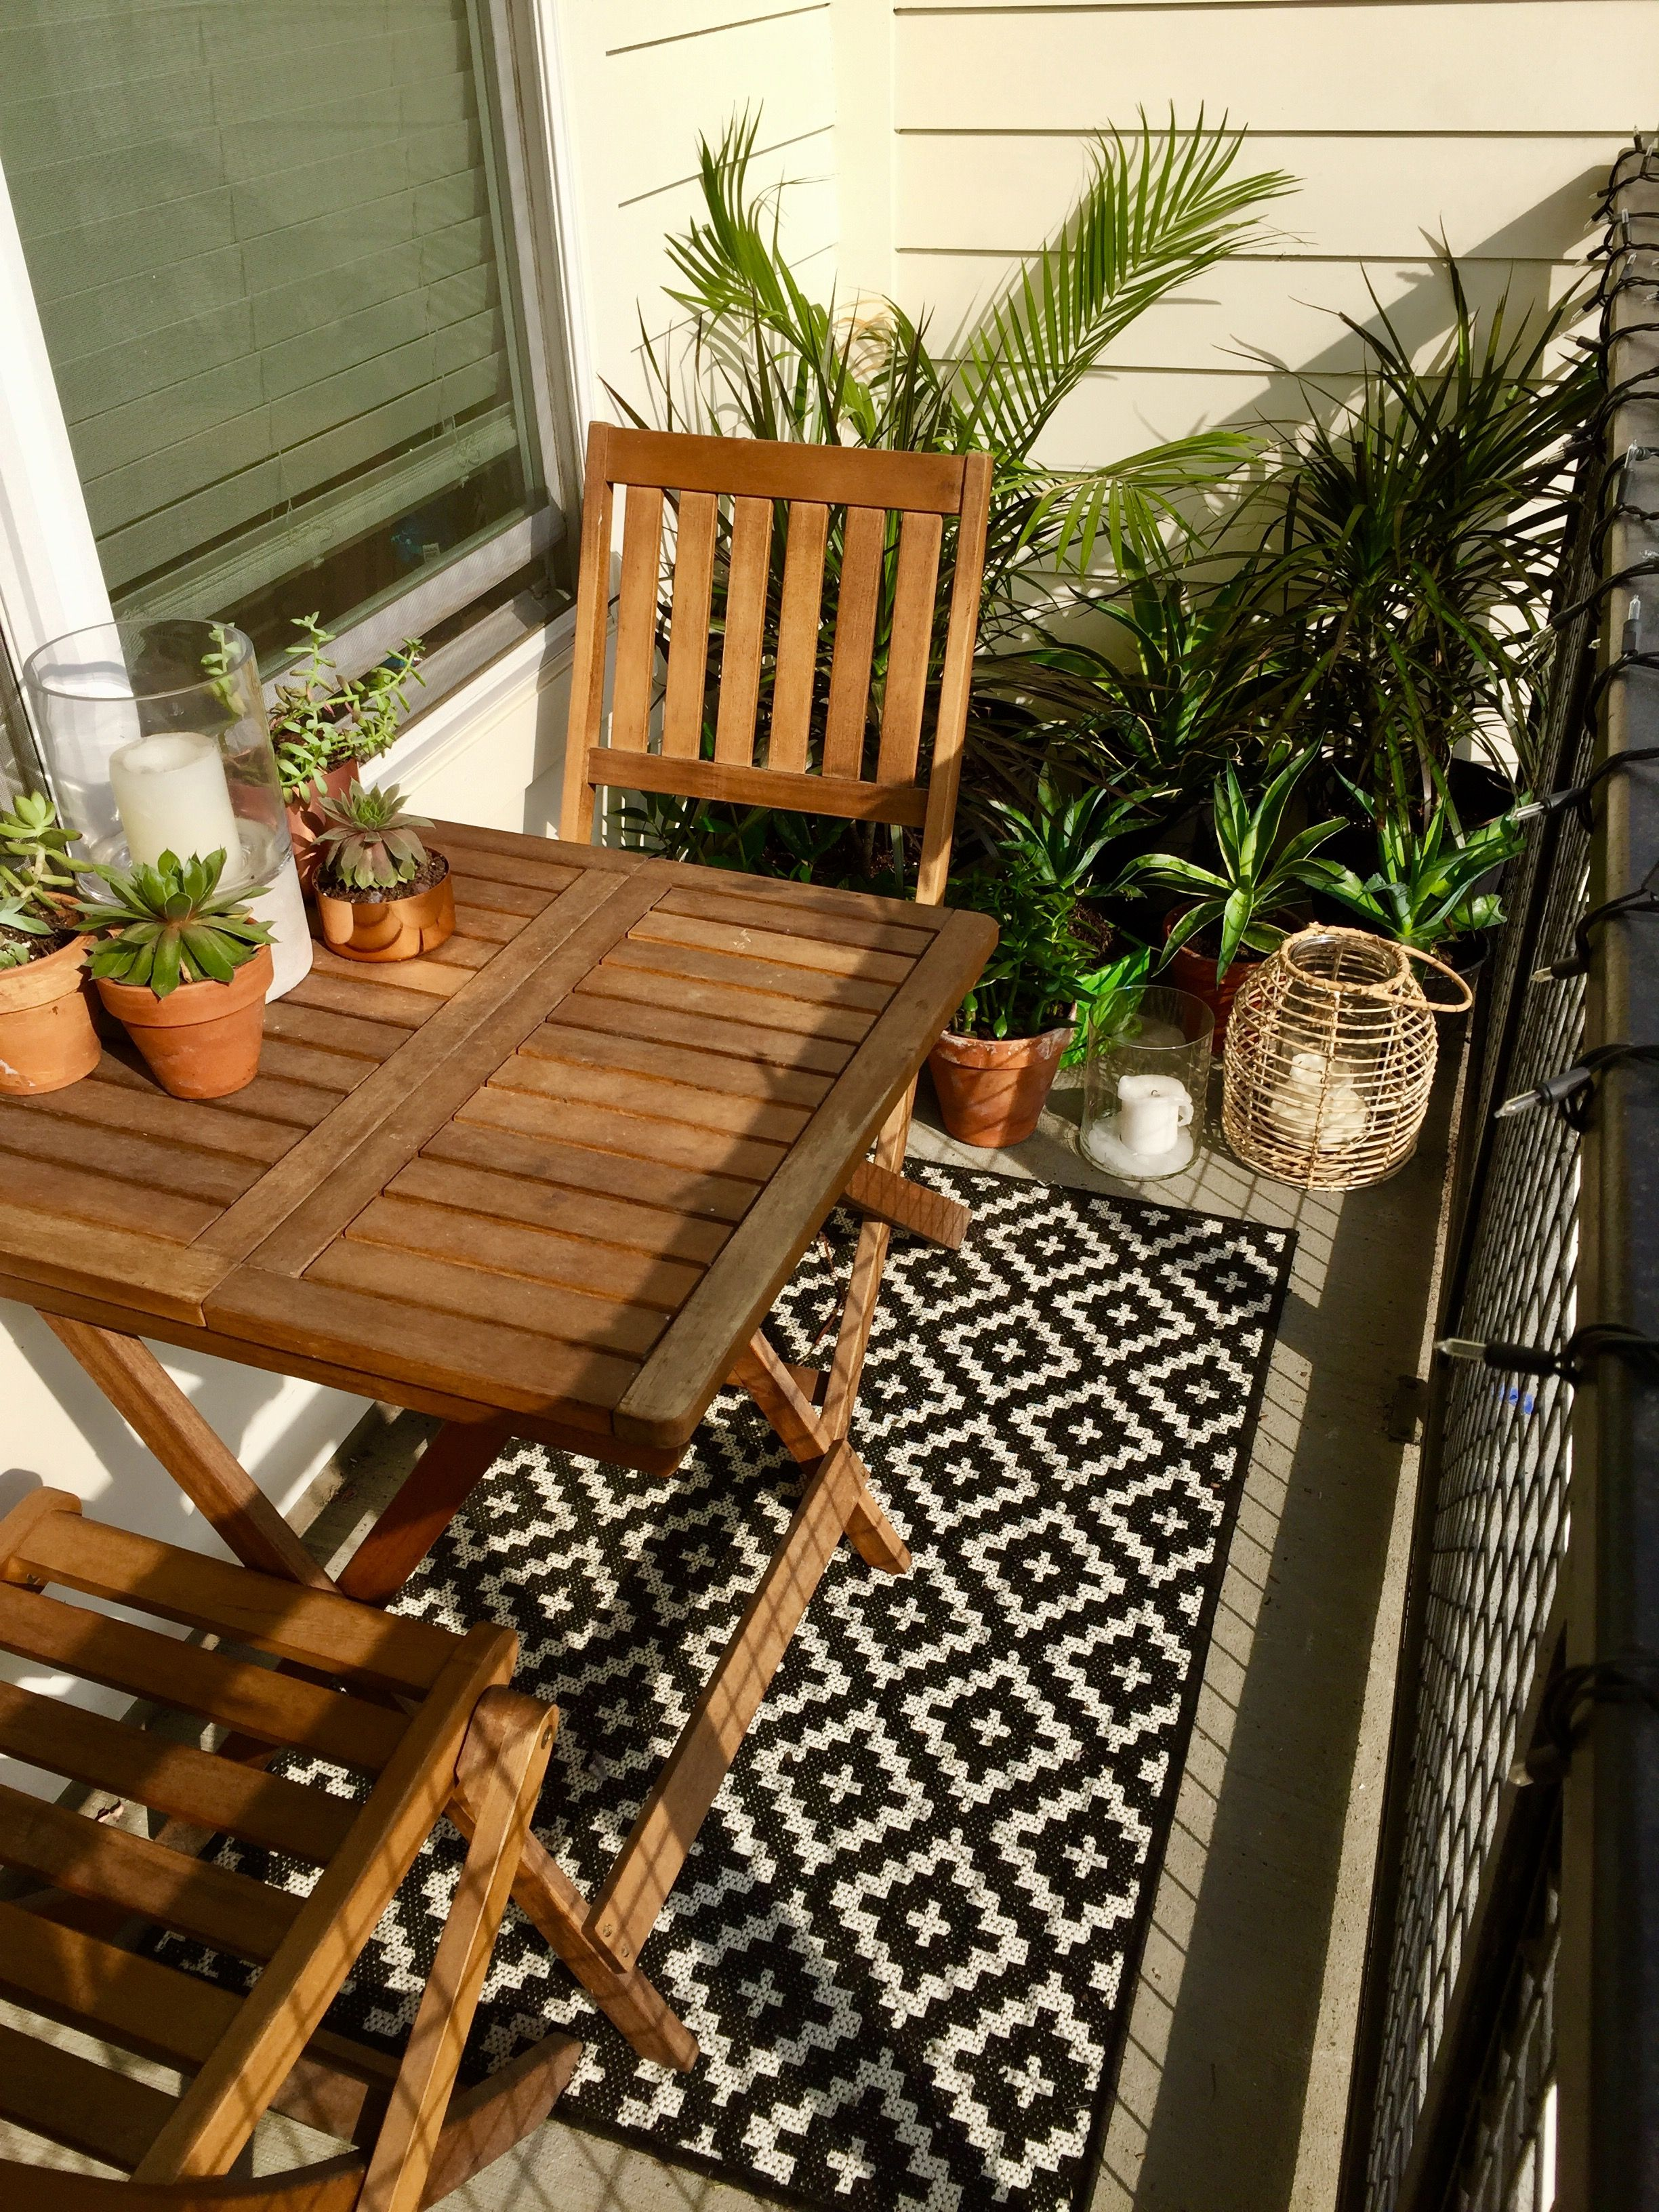 8 Summer Small Patio Ideas For You | Dream Home Ideas ...